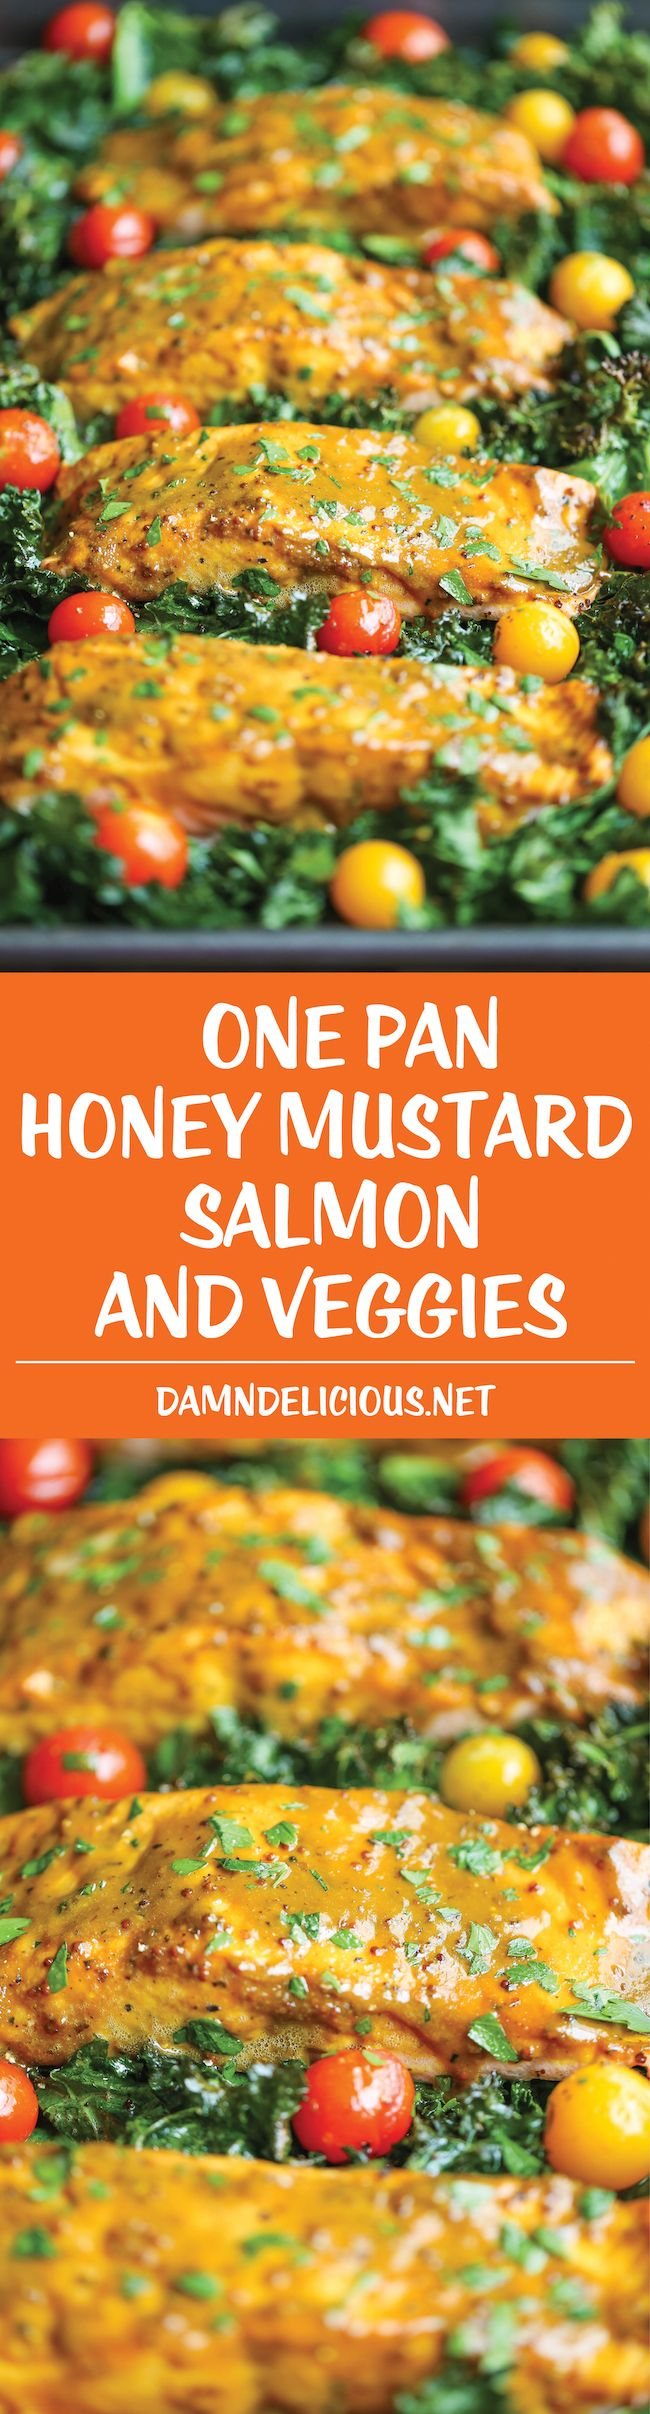 Salmon and Veggies - The easiest, most flavorful honey mustard salmon ...